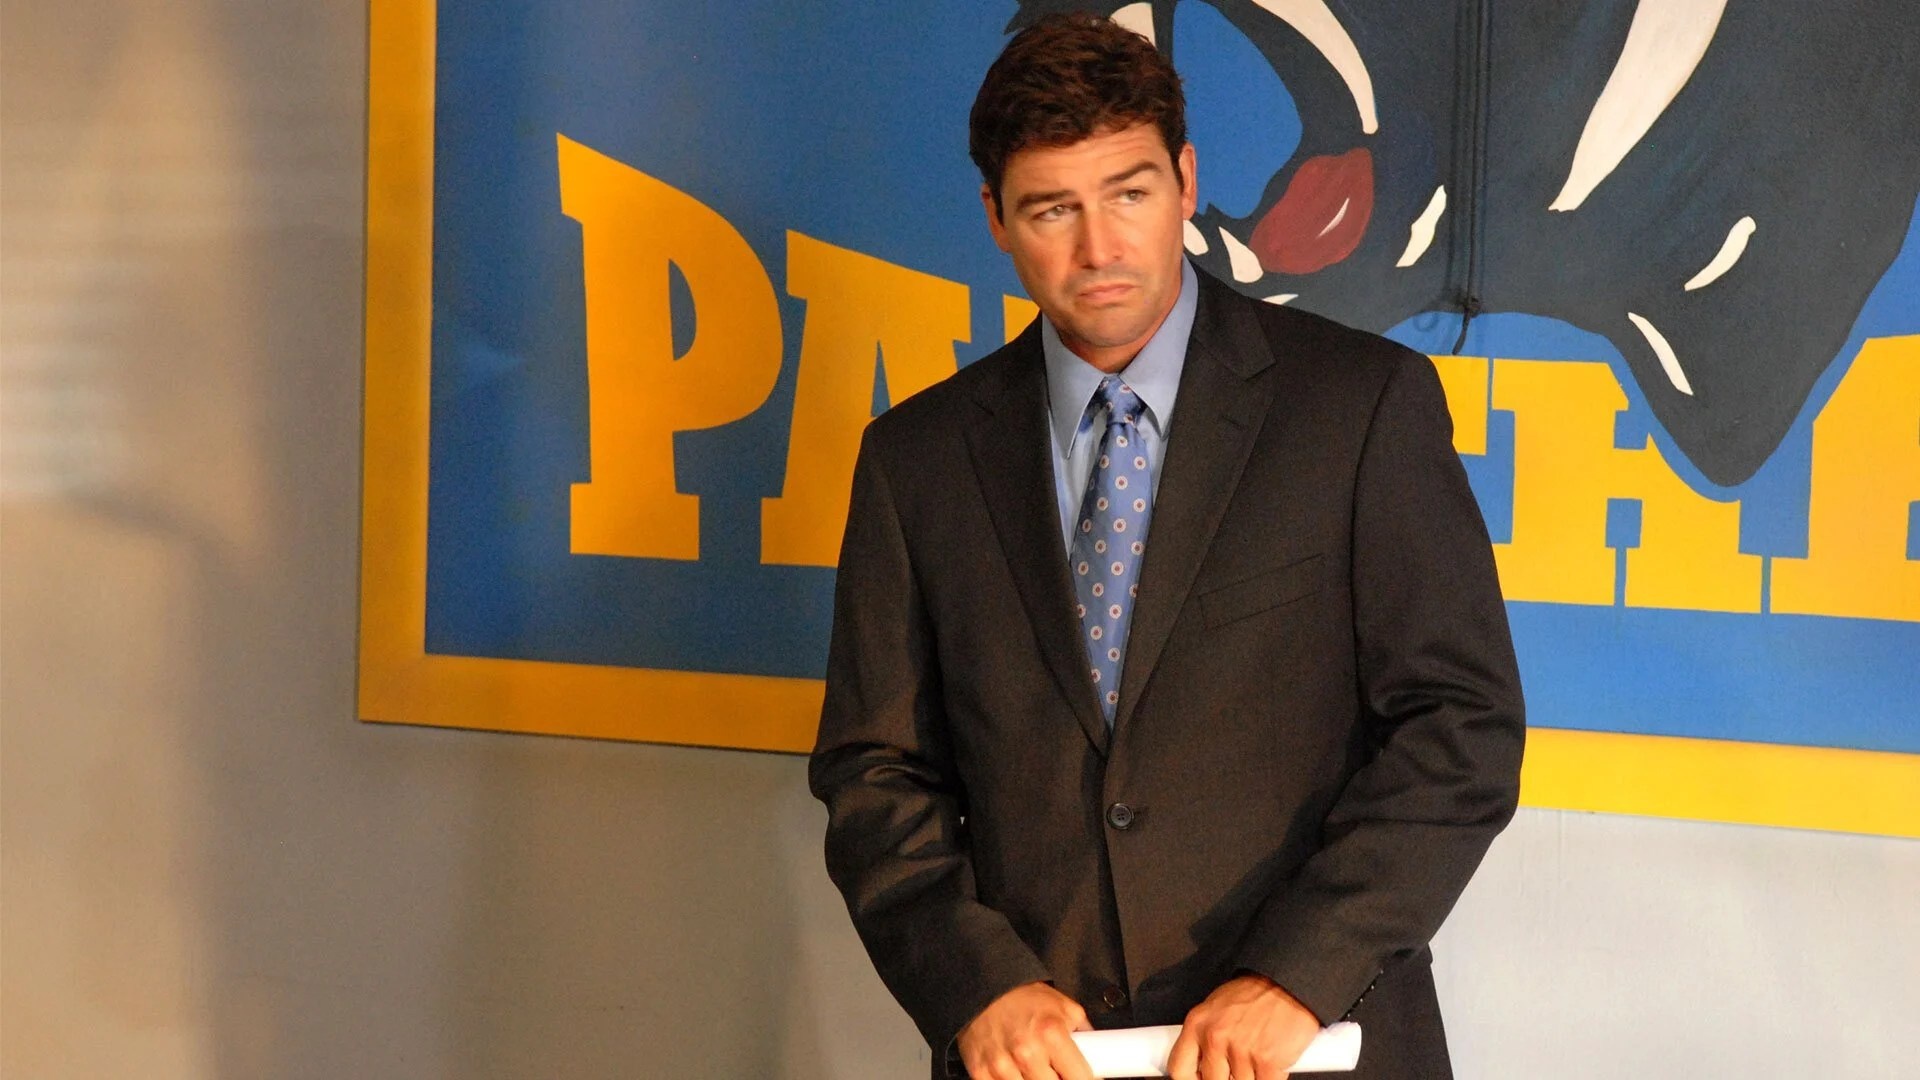 Friday Night Lights Season 1 Recap